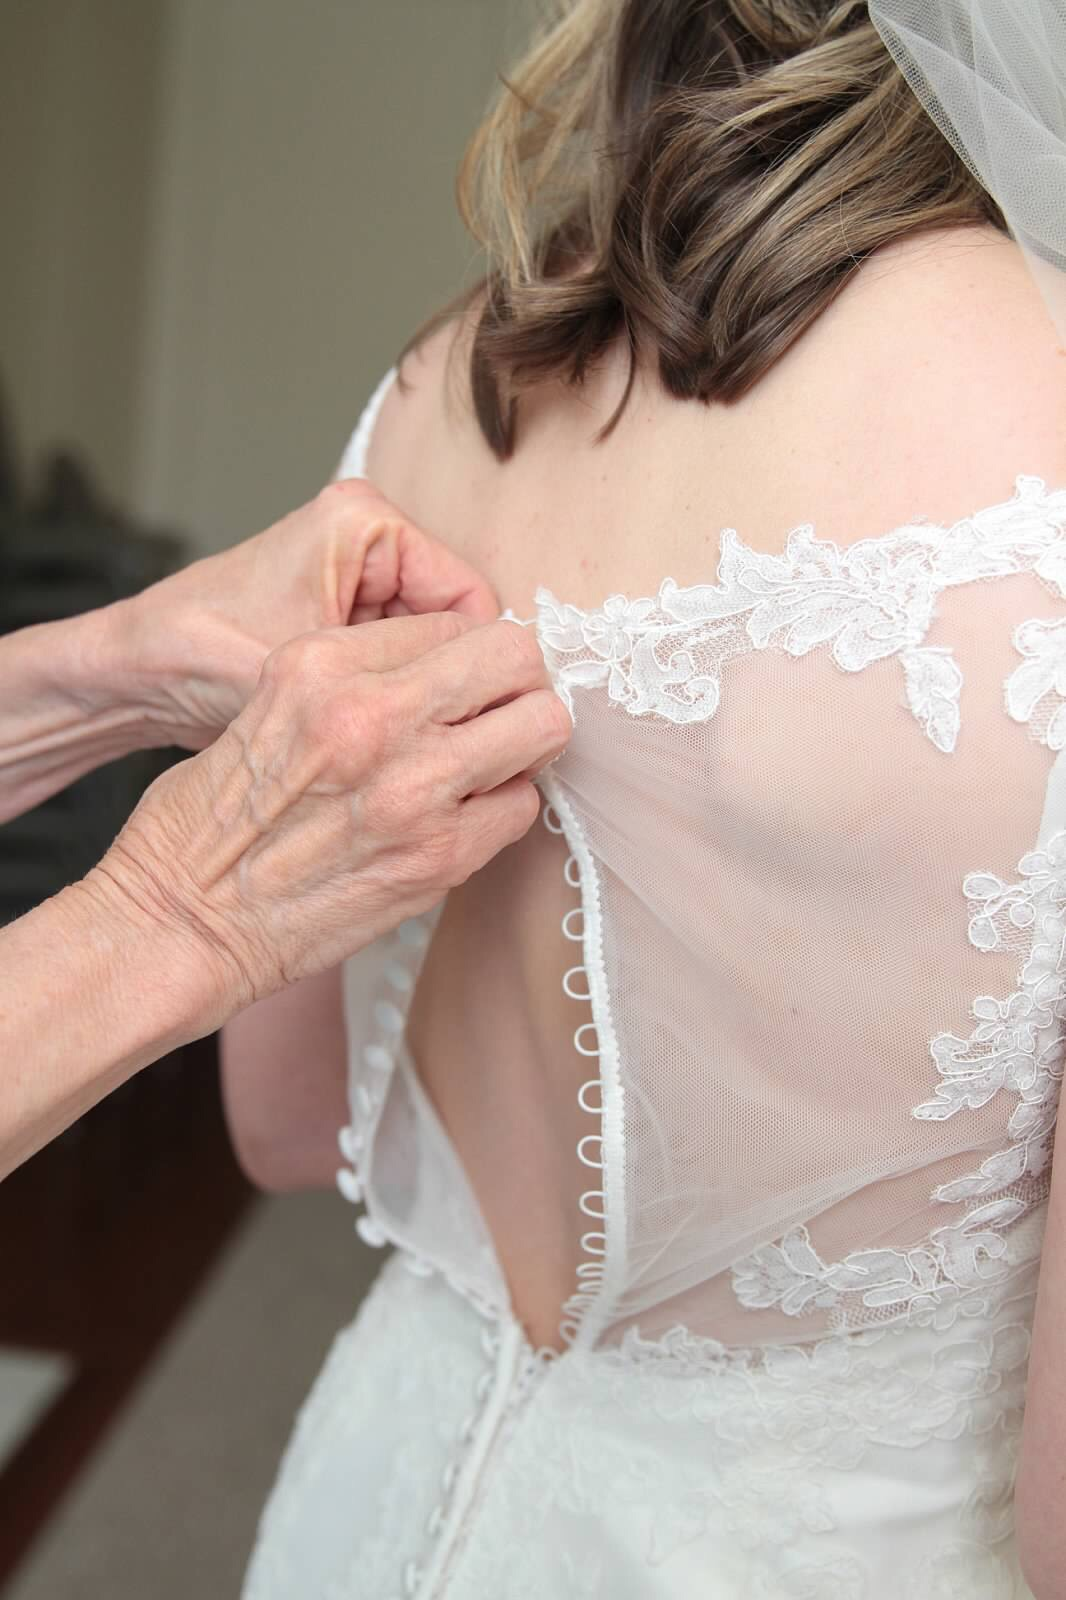 Bride's mother helping her button her dress up